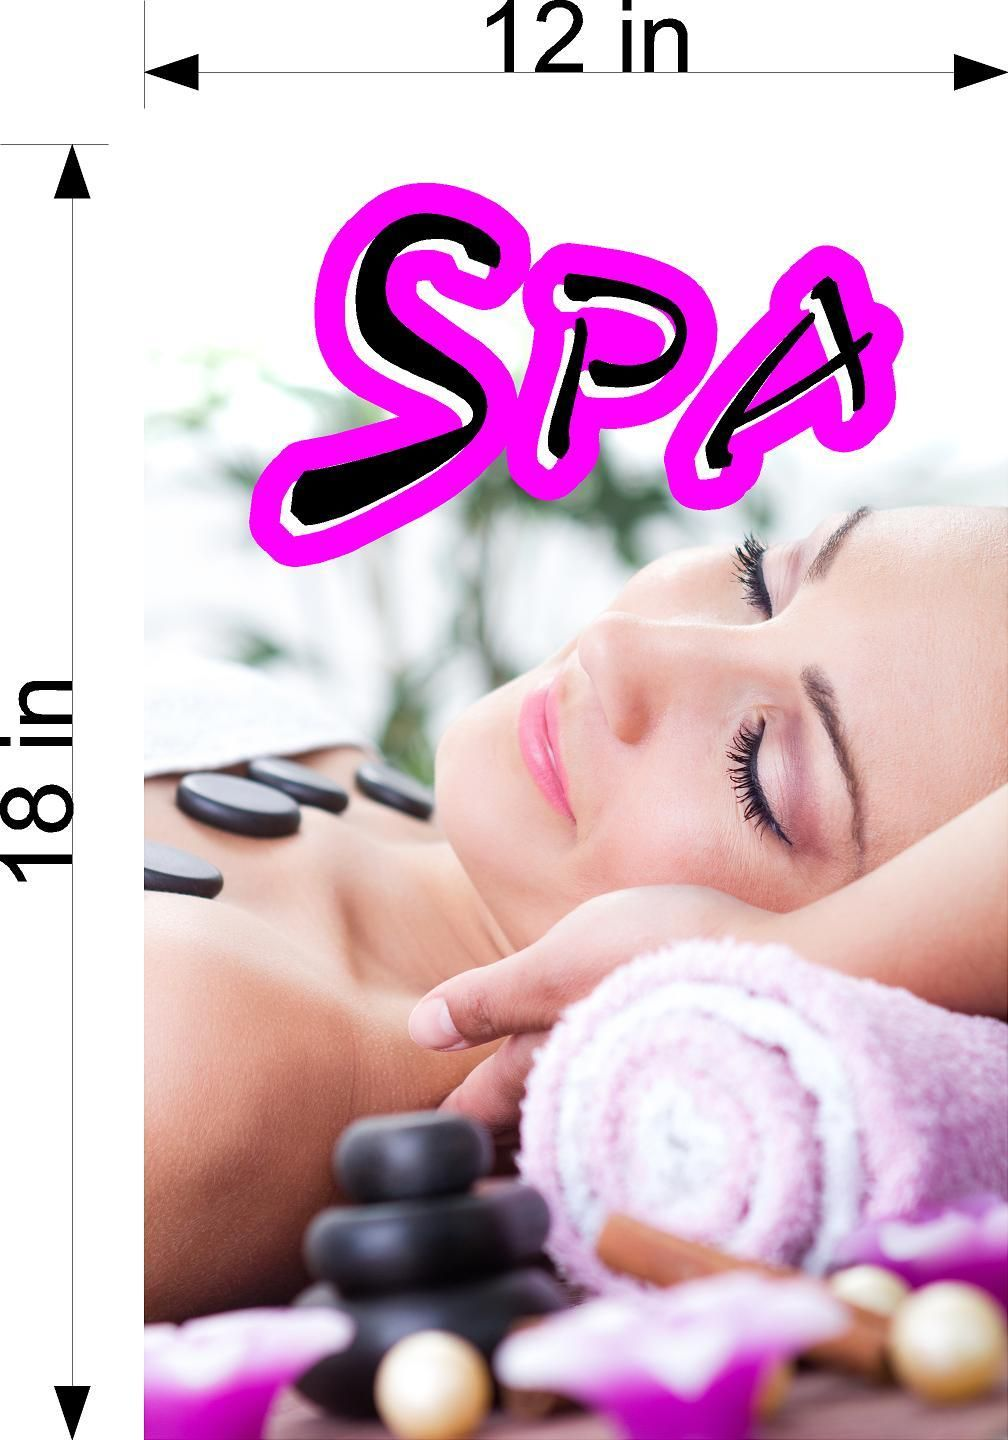 Spa 08 Vertical Wallpaper Poster Decal With Adhesive Backing